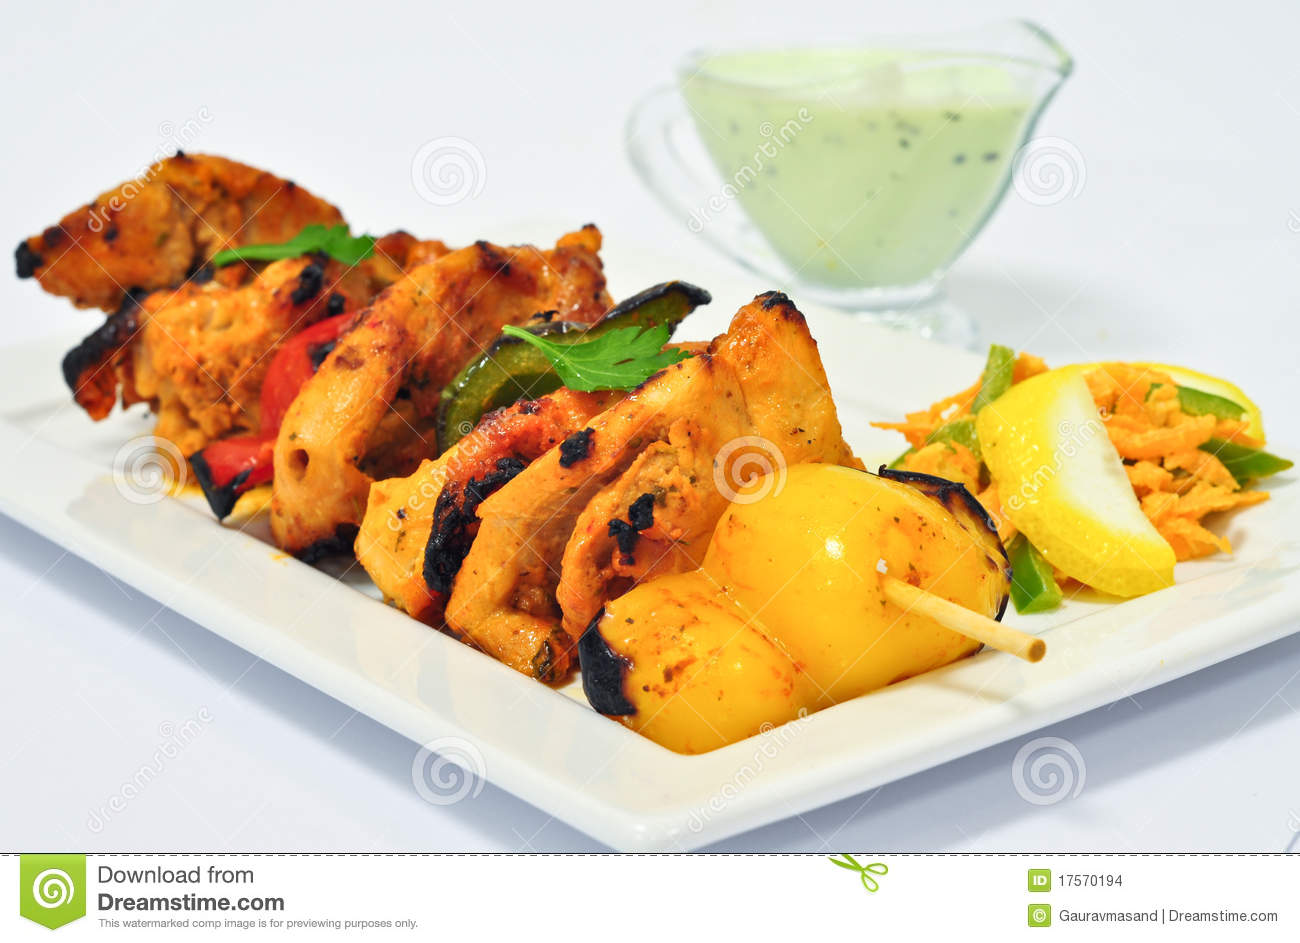 Download Chicken Tikka stock photo. Image of josh, daal, cucumber - 17570194